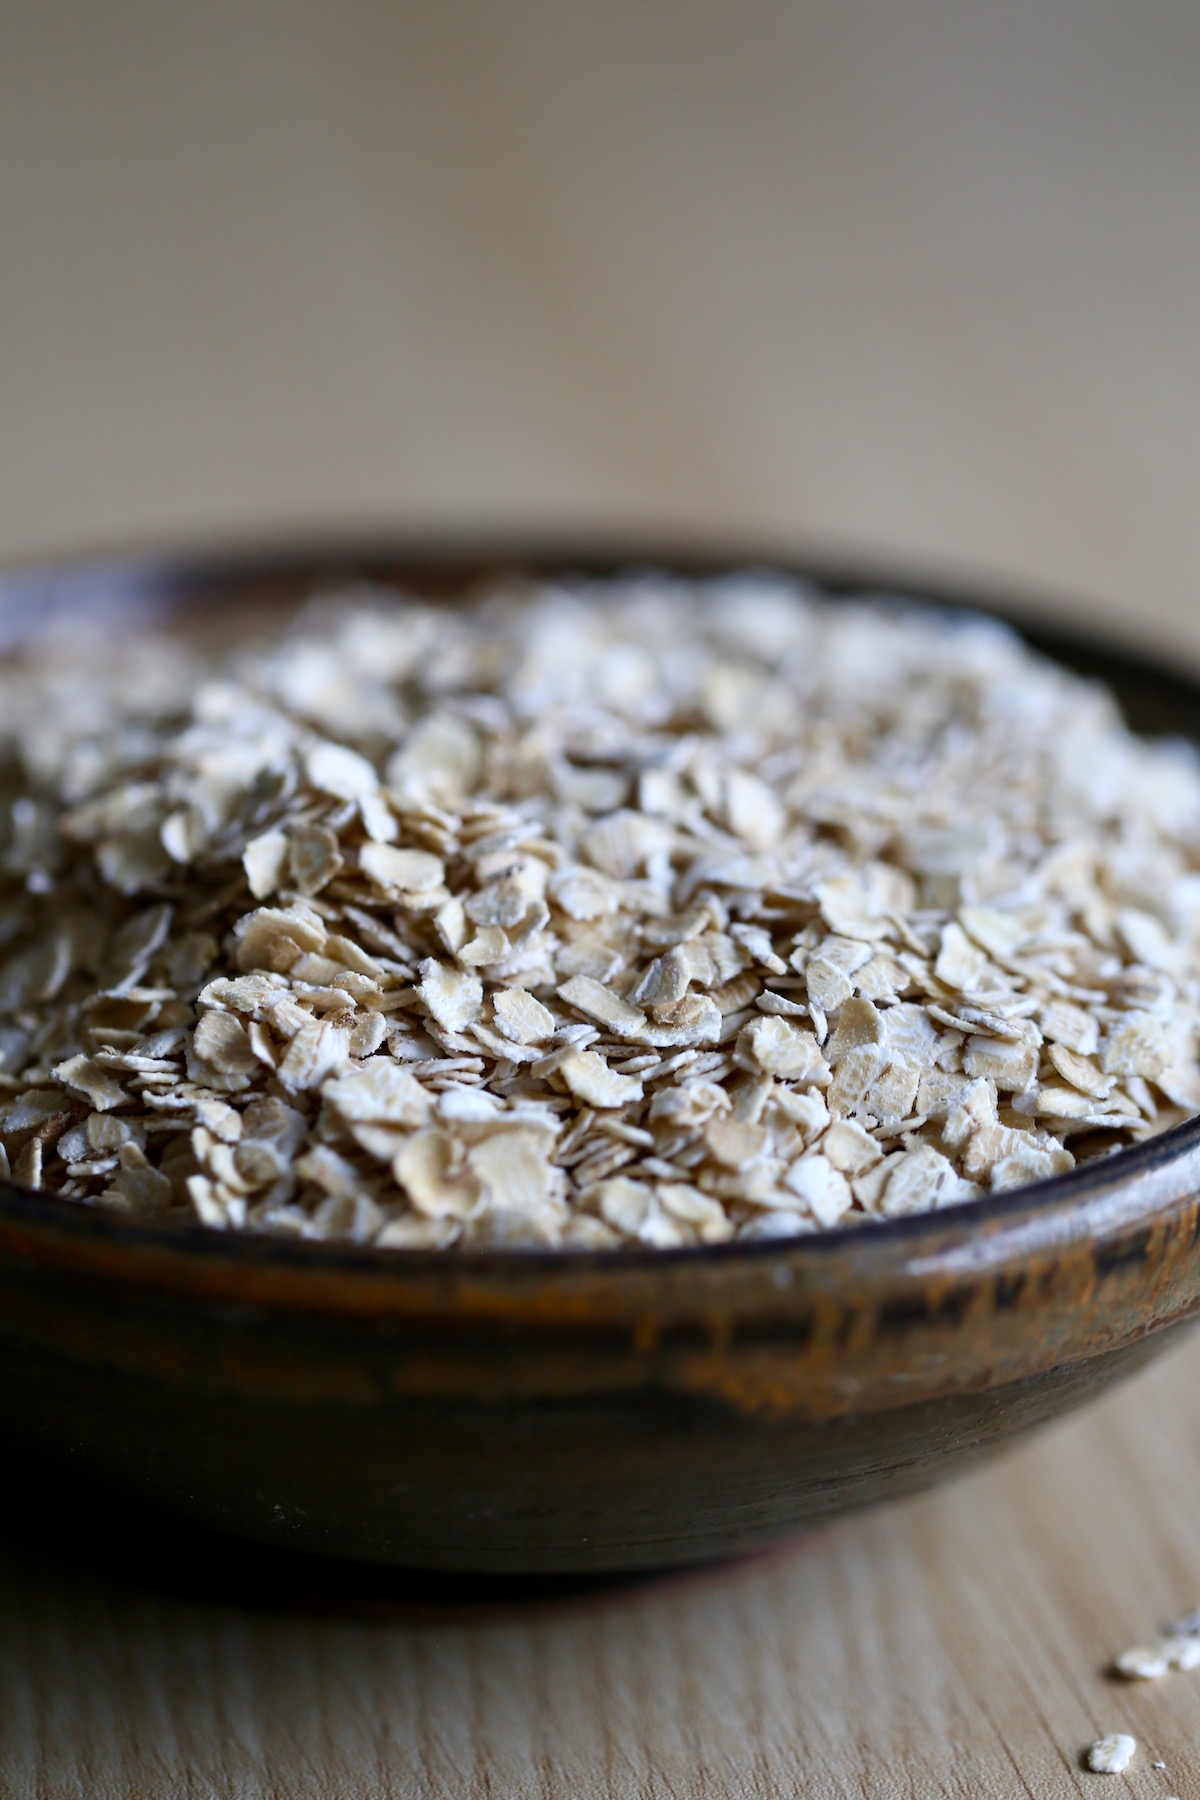 Quick cooking oats in a bowl